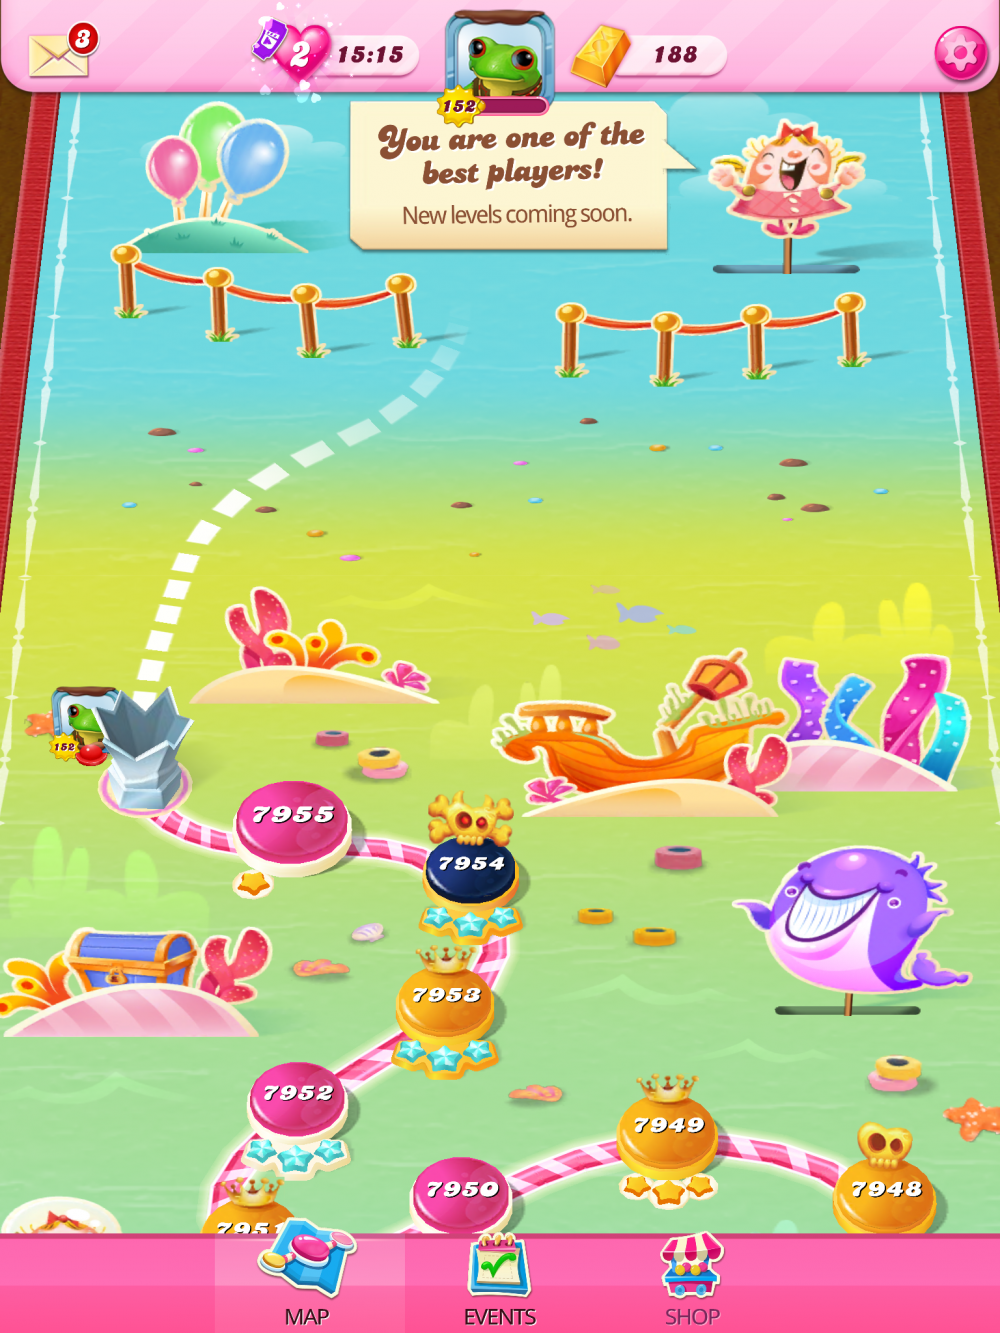 7955 Candy crush.PNG